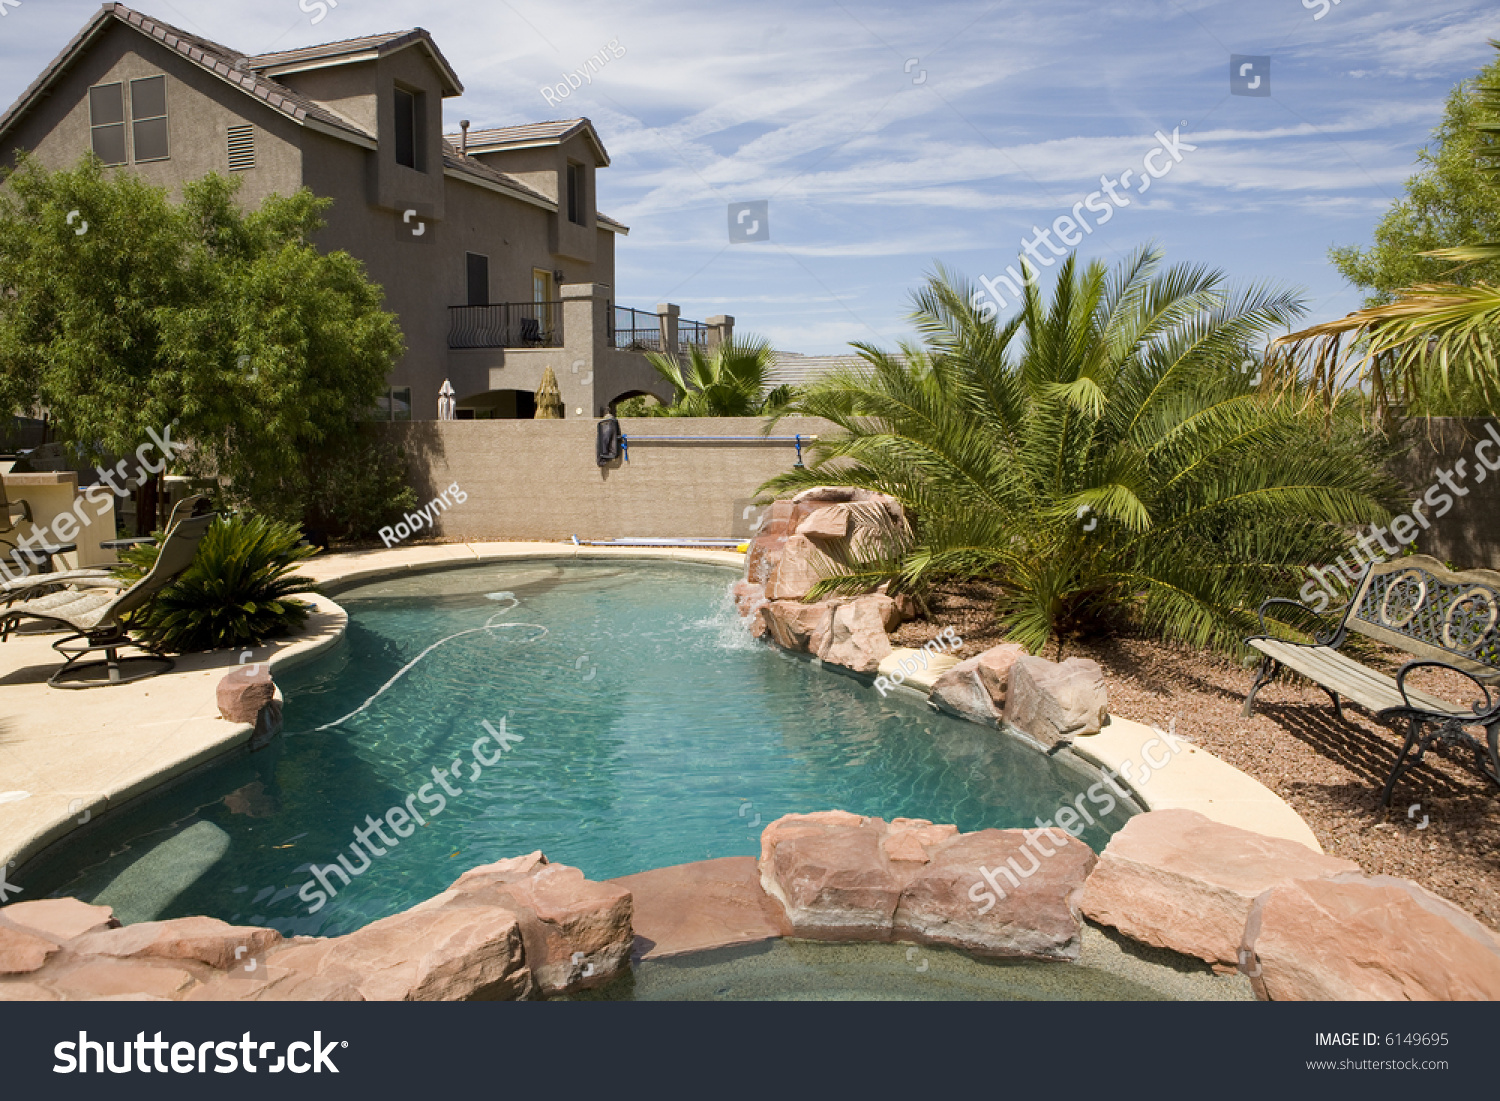 Pool And Jacuzzi Stone Pool Jacuzzi Backyard Stock Photo Edit Now 6149695